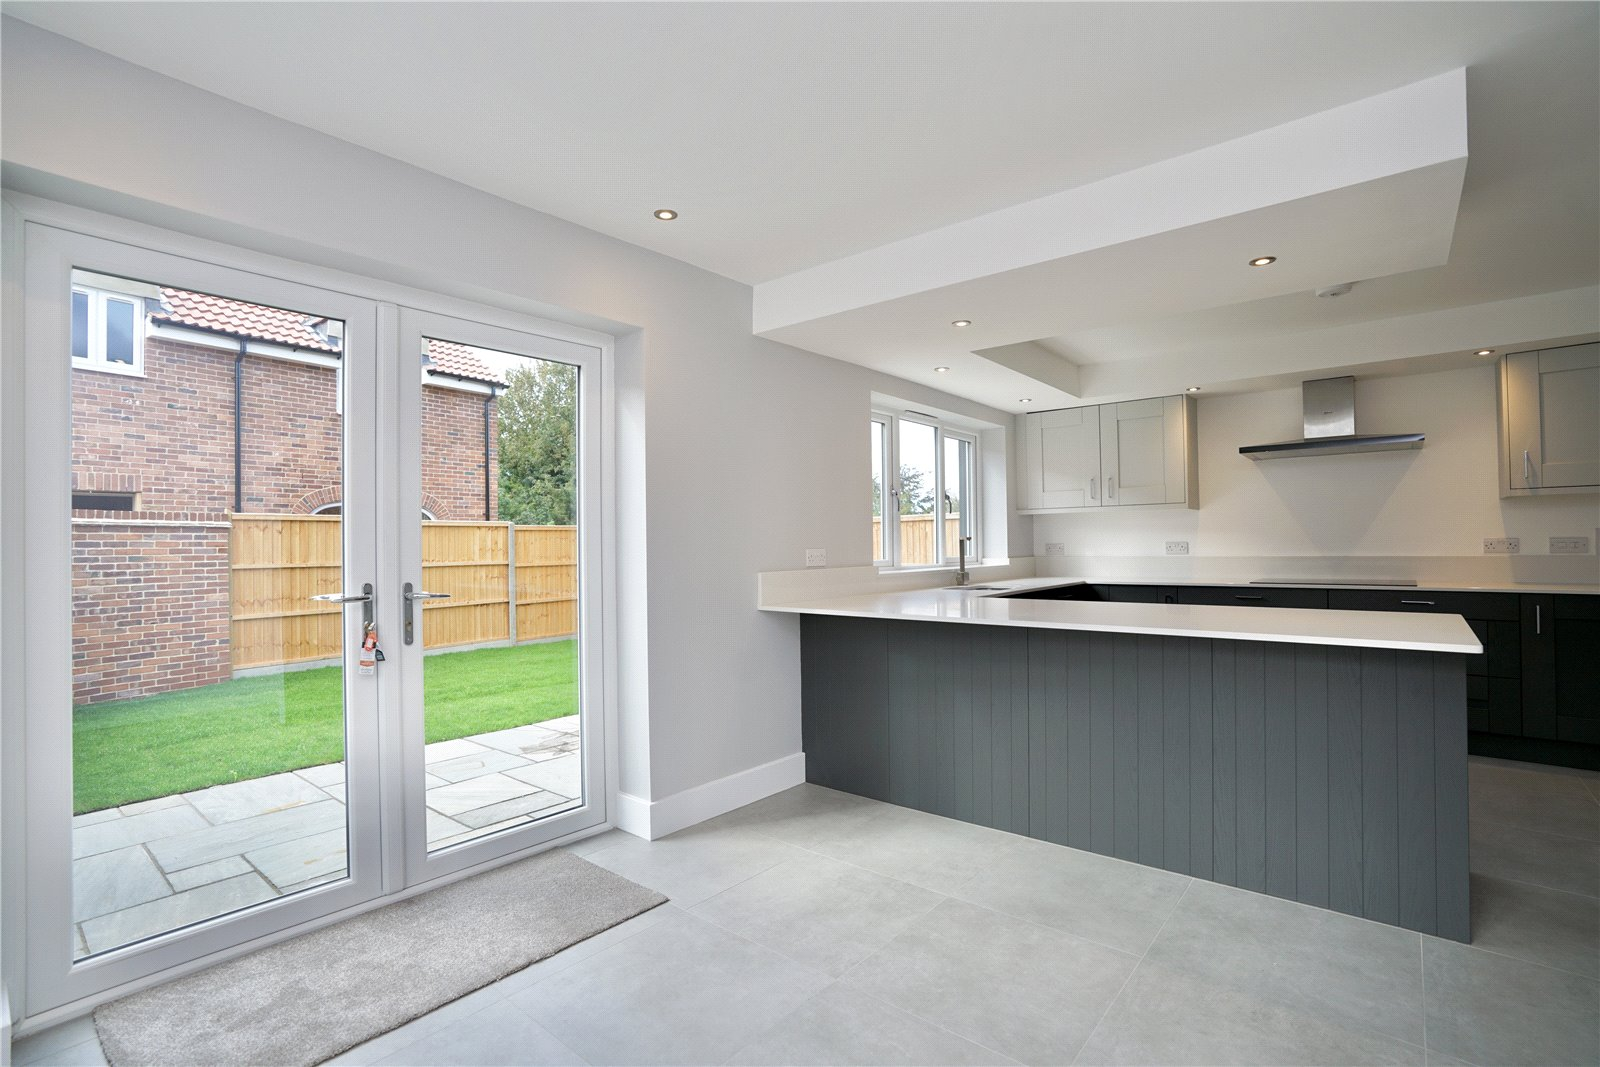 4 bed house for sale in High Street  - Property Image 4